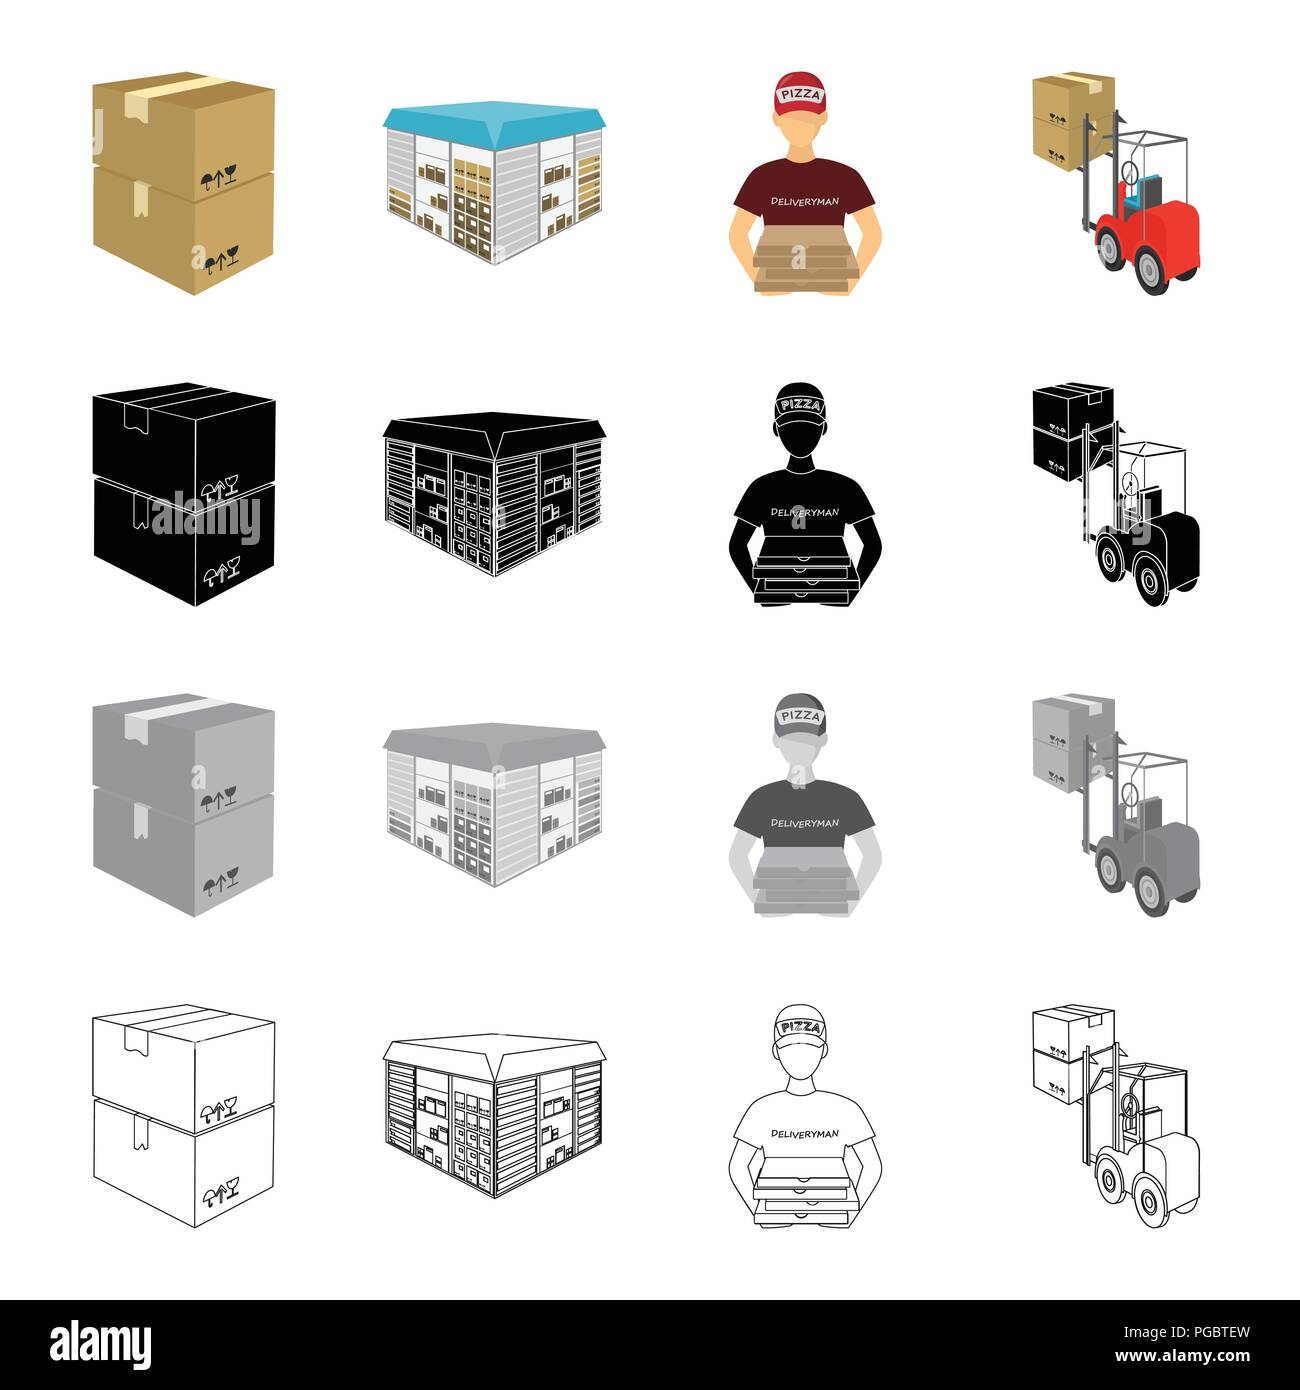 A box of goods, a logistics warehouse, a courier for pizza delivery, a forklift. Logistics and delivery set collection icons in cartoon black monochro - Stock Image